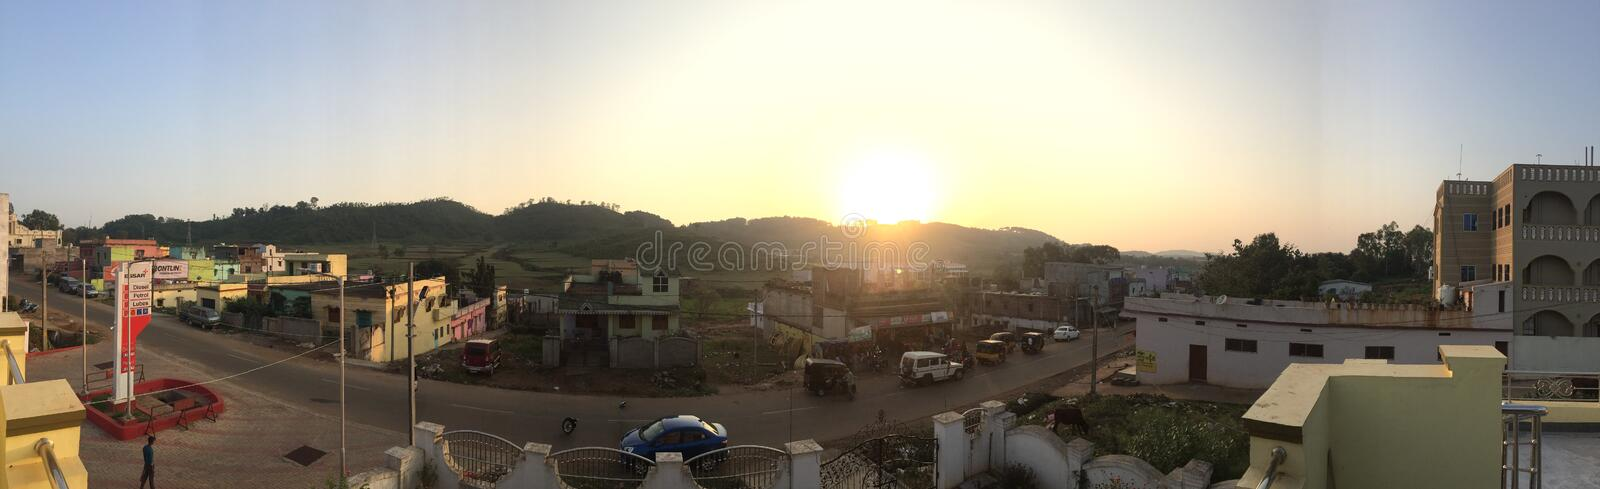 Sunset in the town of Koraput, southern Odisha. Scenic sunset captured from a terrace in the town of Koraput, Odisha stock photos